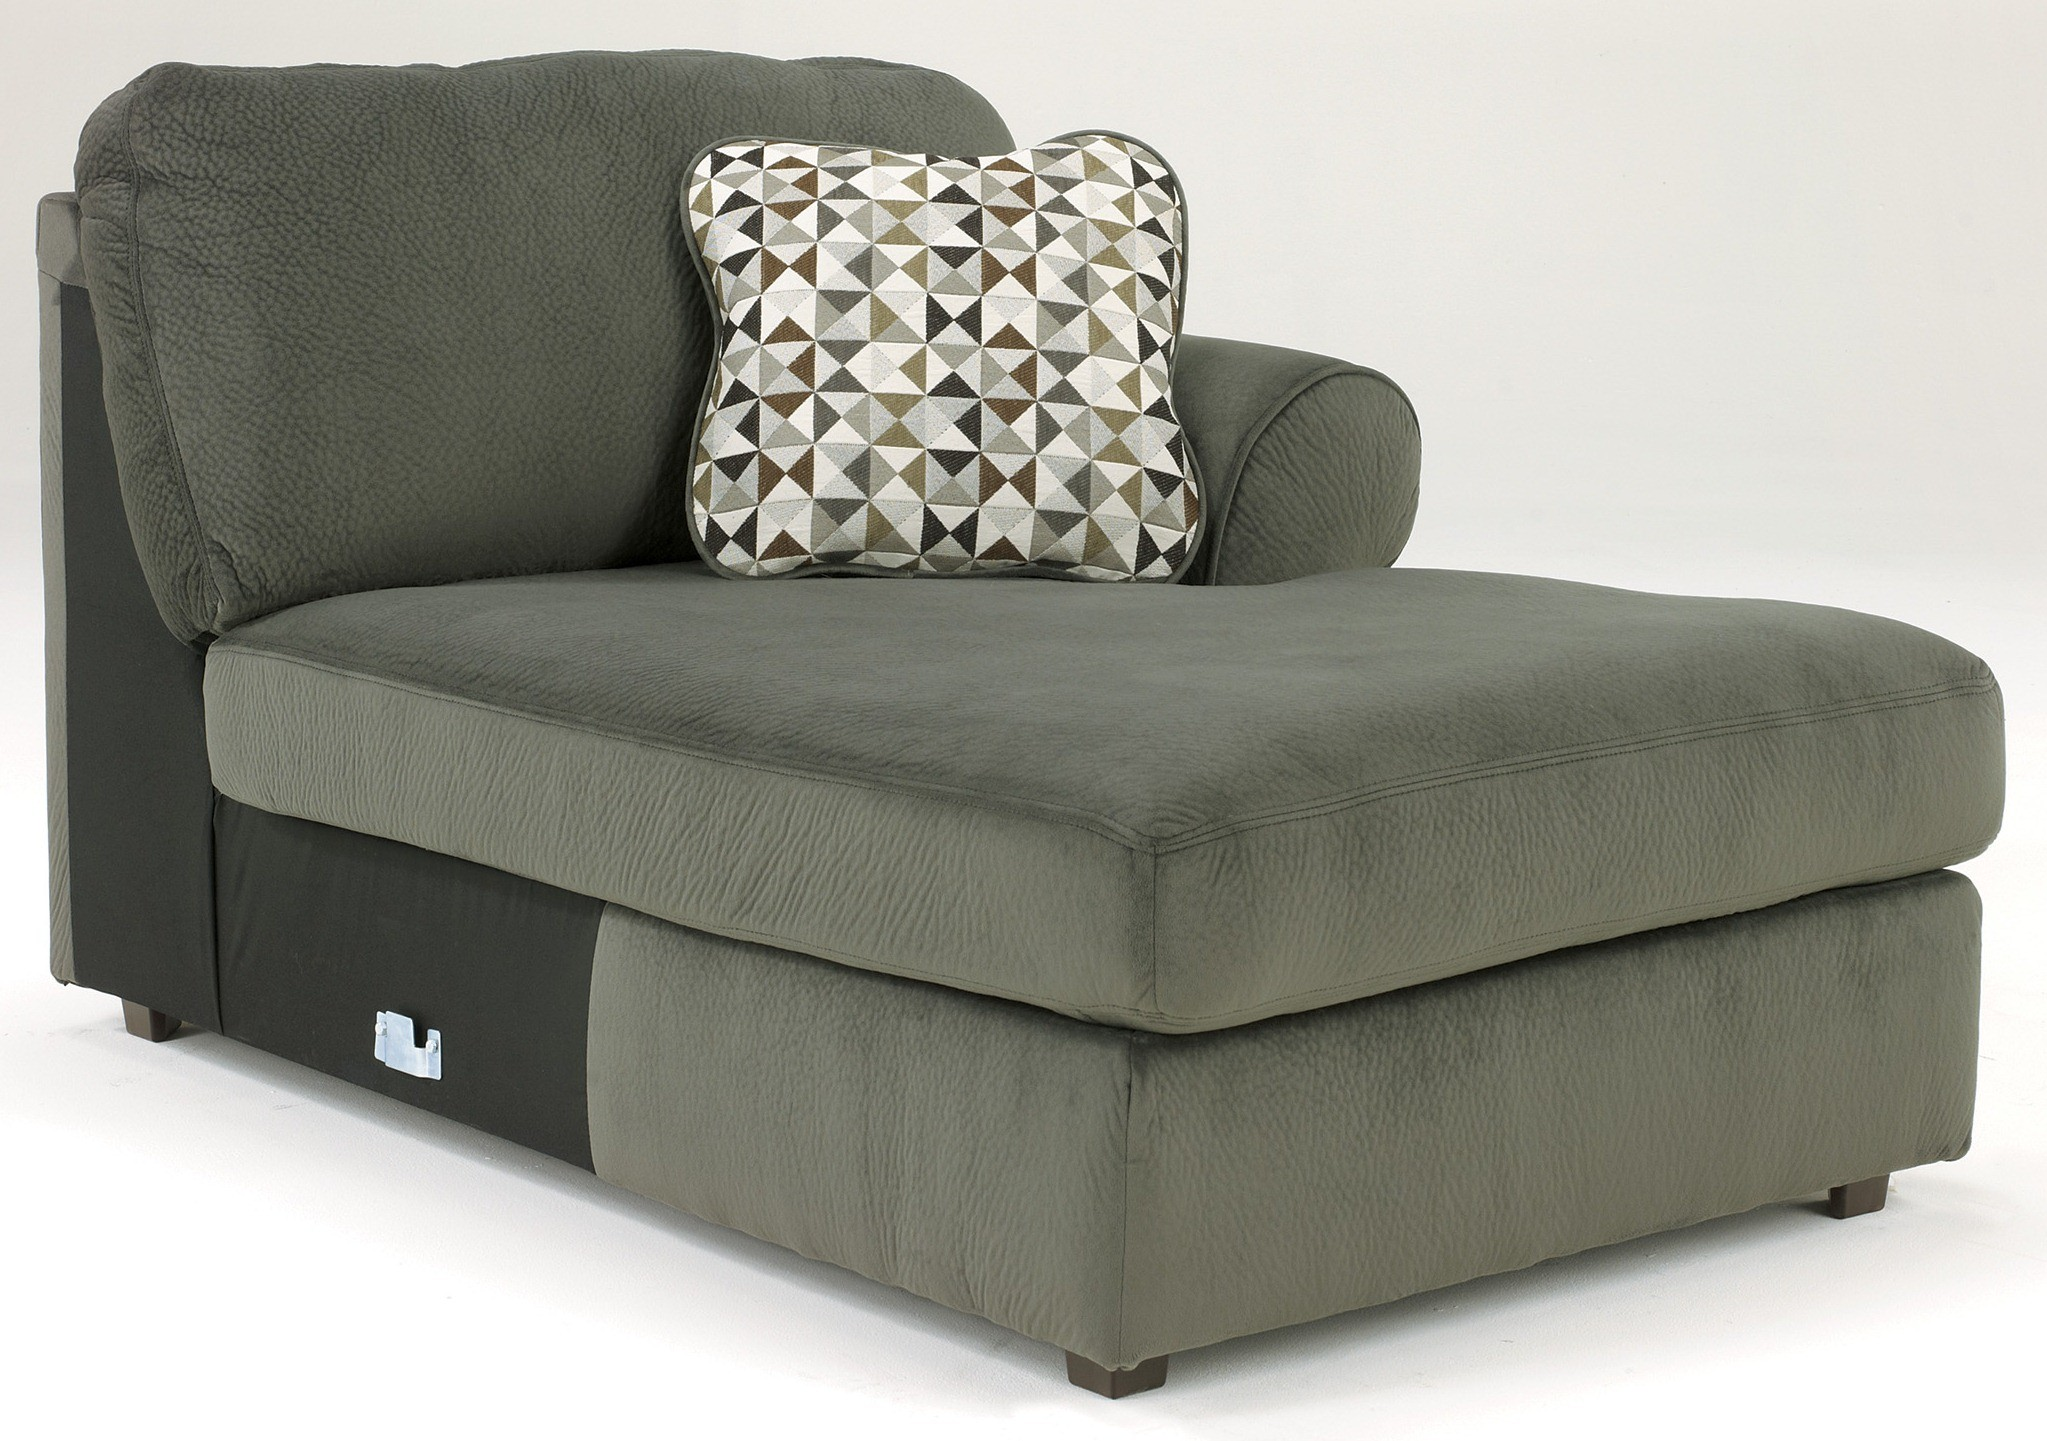 Jessa place 3 piece sectional - Jessa Place Pewter Right Arm Facing Sectional From Ashley 39803 66 34 17 Coleman Furniture